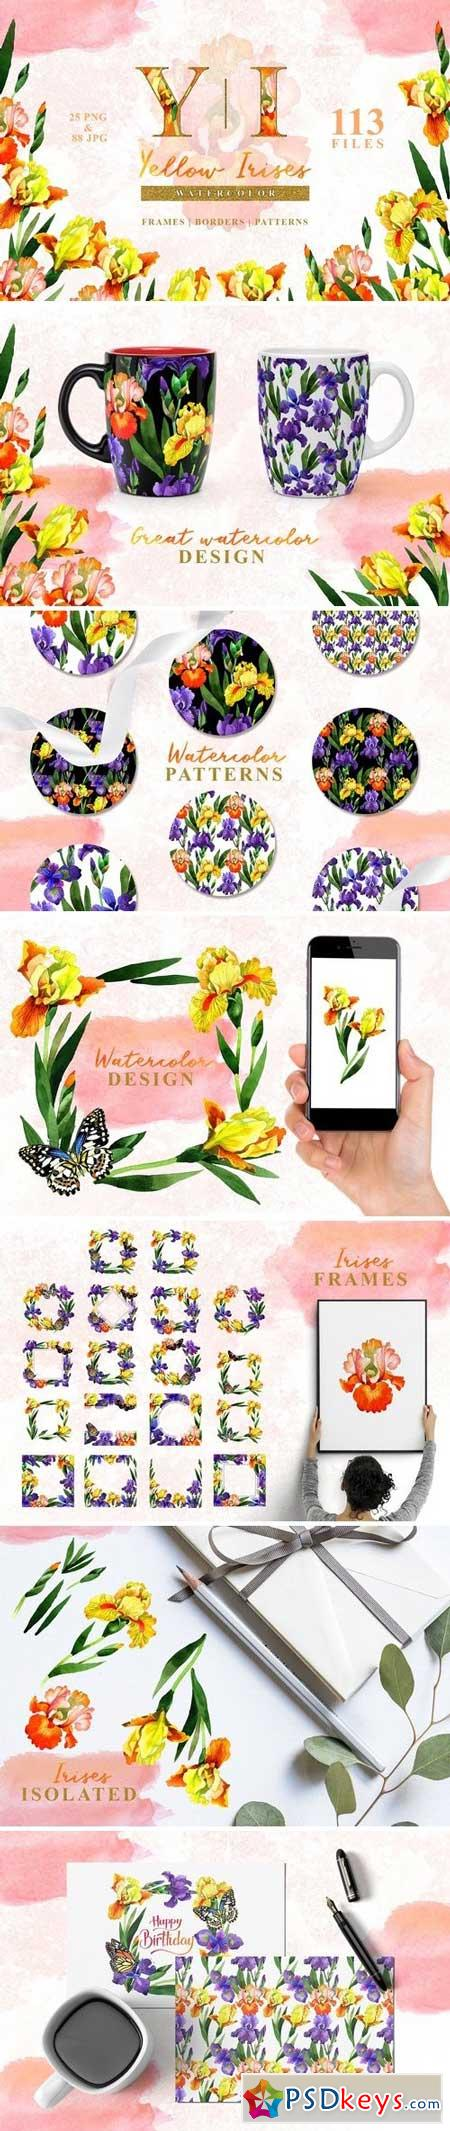 Yellow irises Watercolor png 3319894